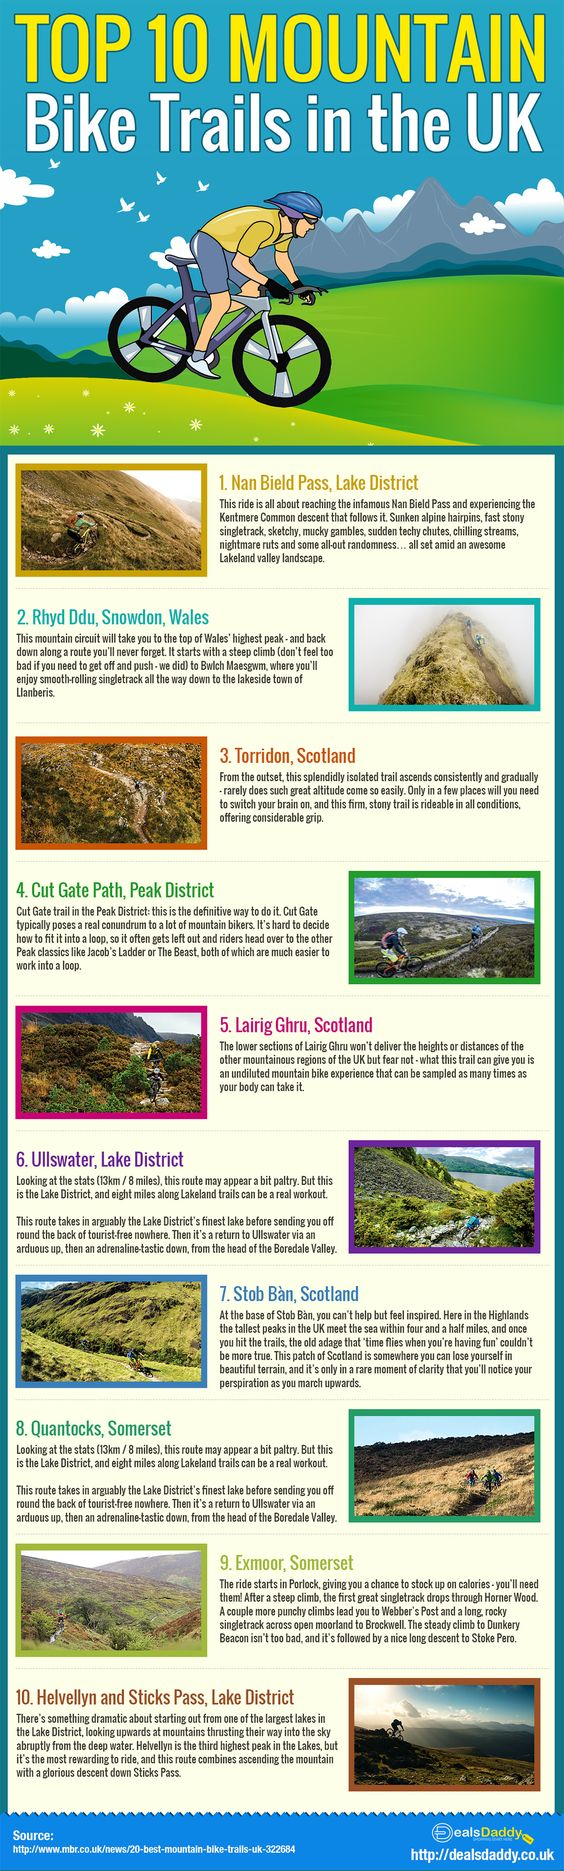 Top 10 Mountain Bike Trails In The UK